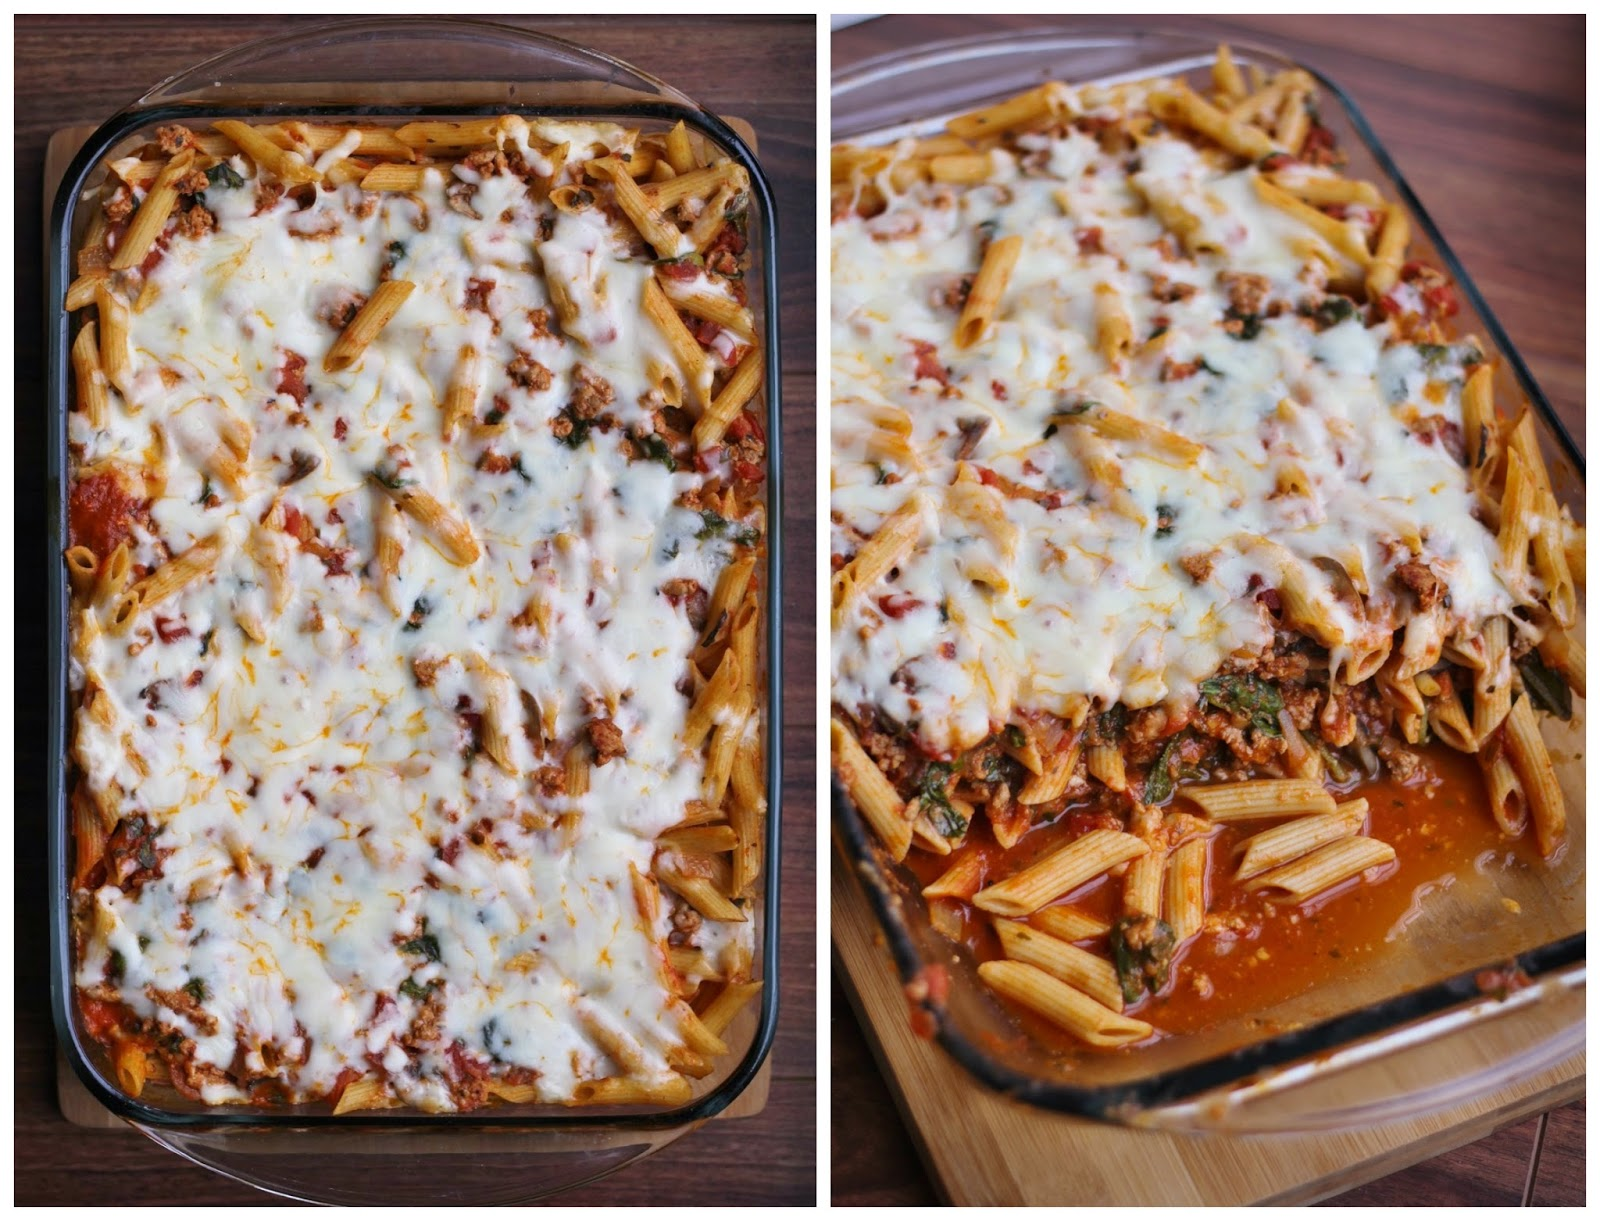 baked whole wheat pasta with turkey, kale, mozzarella